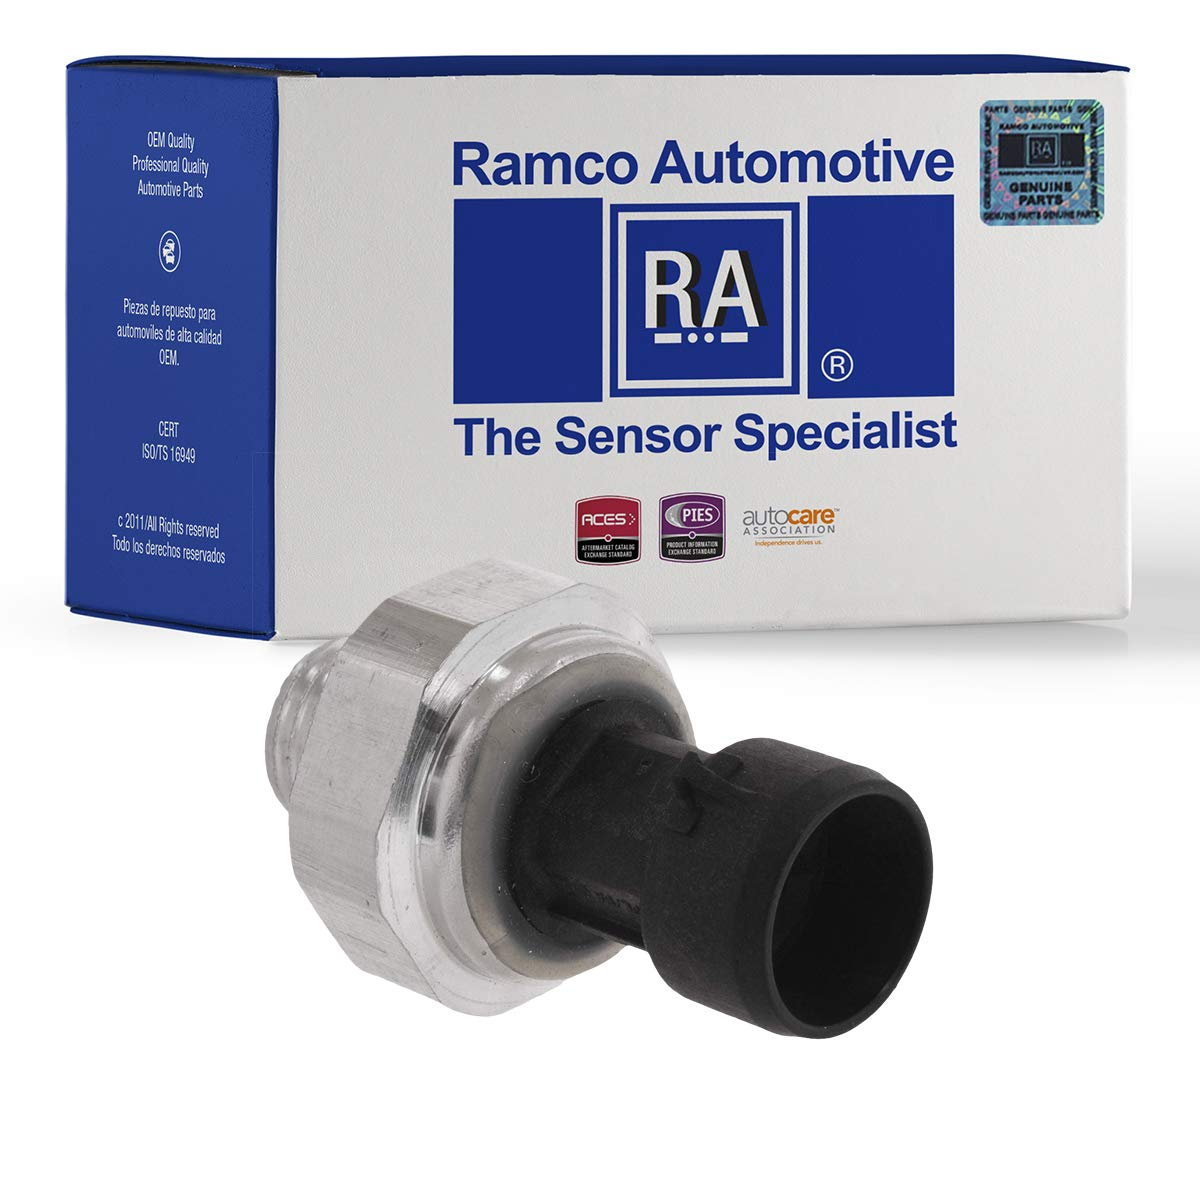 Compatible with Wells PS629 RA-OPS1060 Engine Oil Pressure Switch Ramco Automotive Standard Motor Products PS425